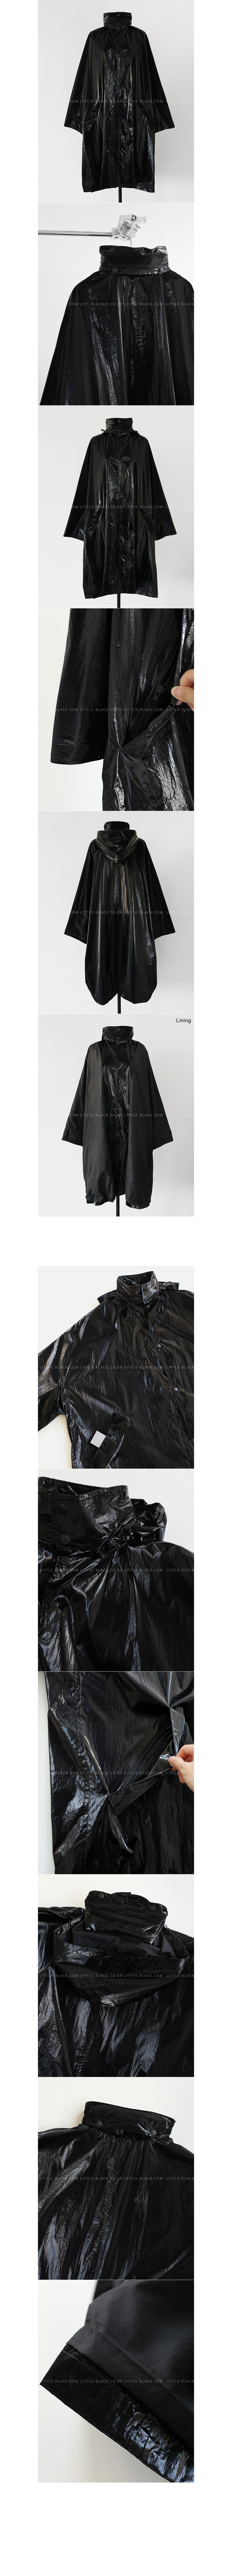 Metallic Hooded Raincoat|